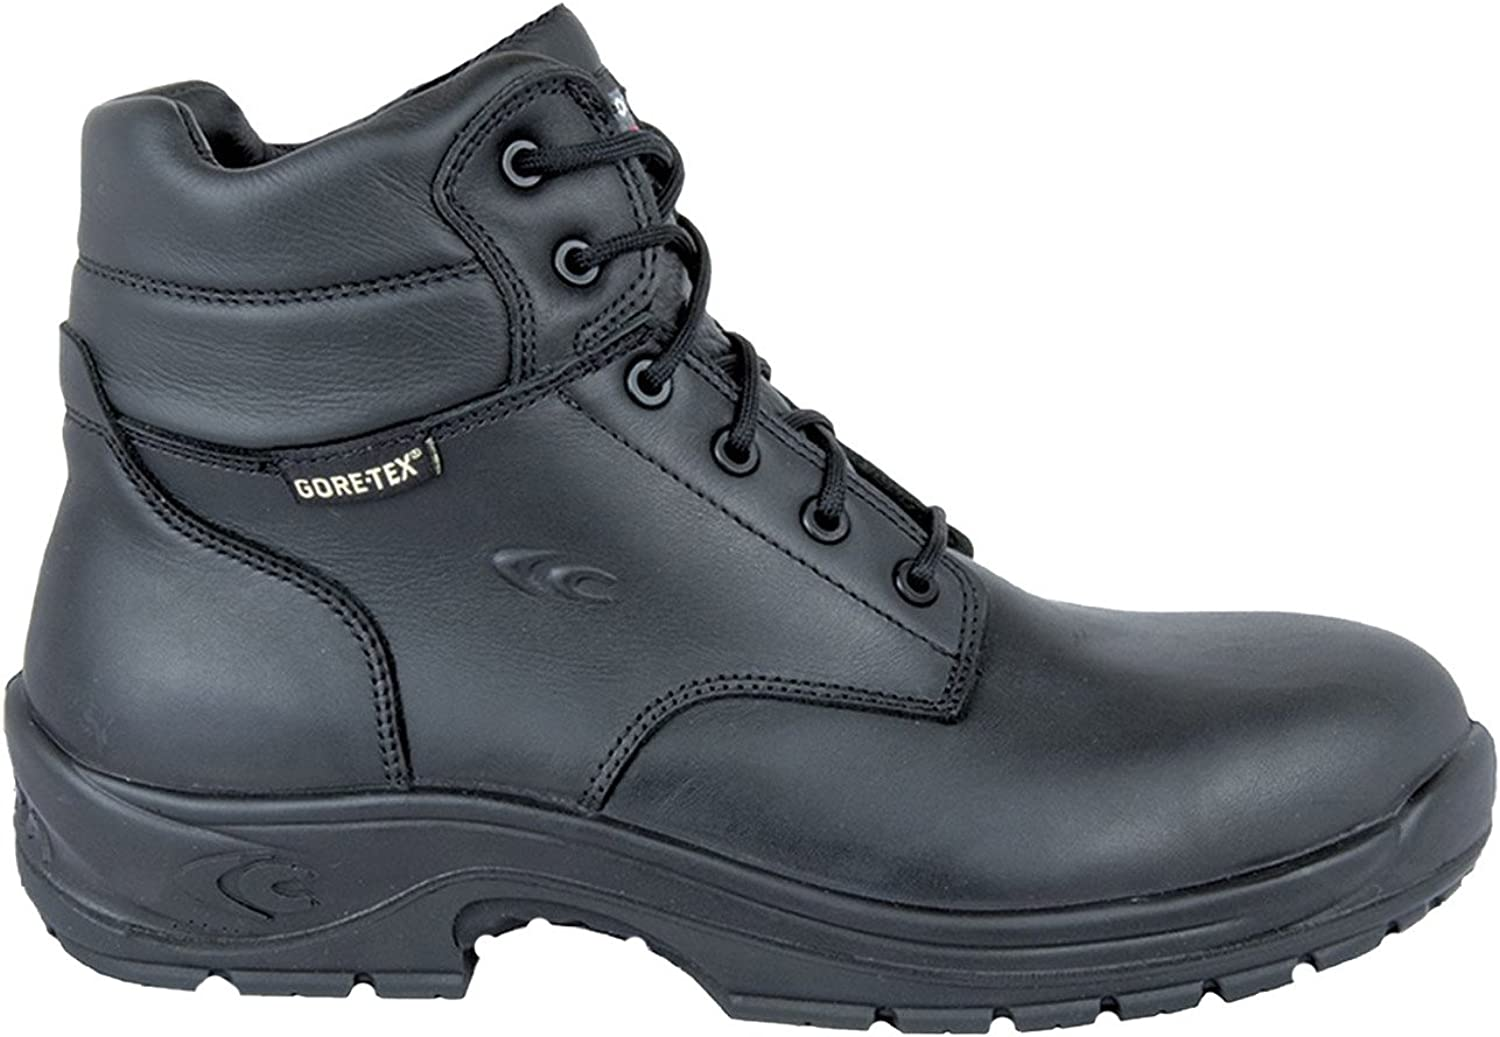 Cofra 10220-000.W42 Safety shoes Marine O2 Wr HRO SRC Fo Size 42 in Black